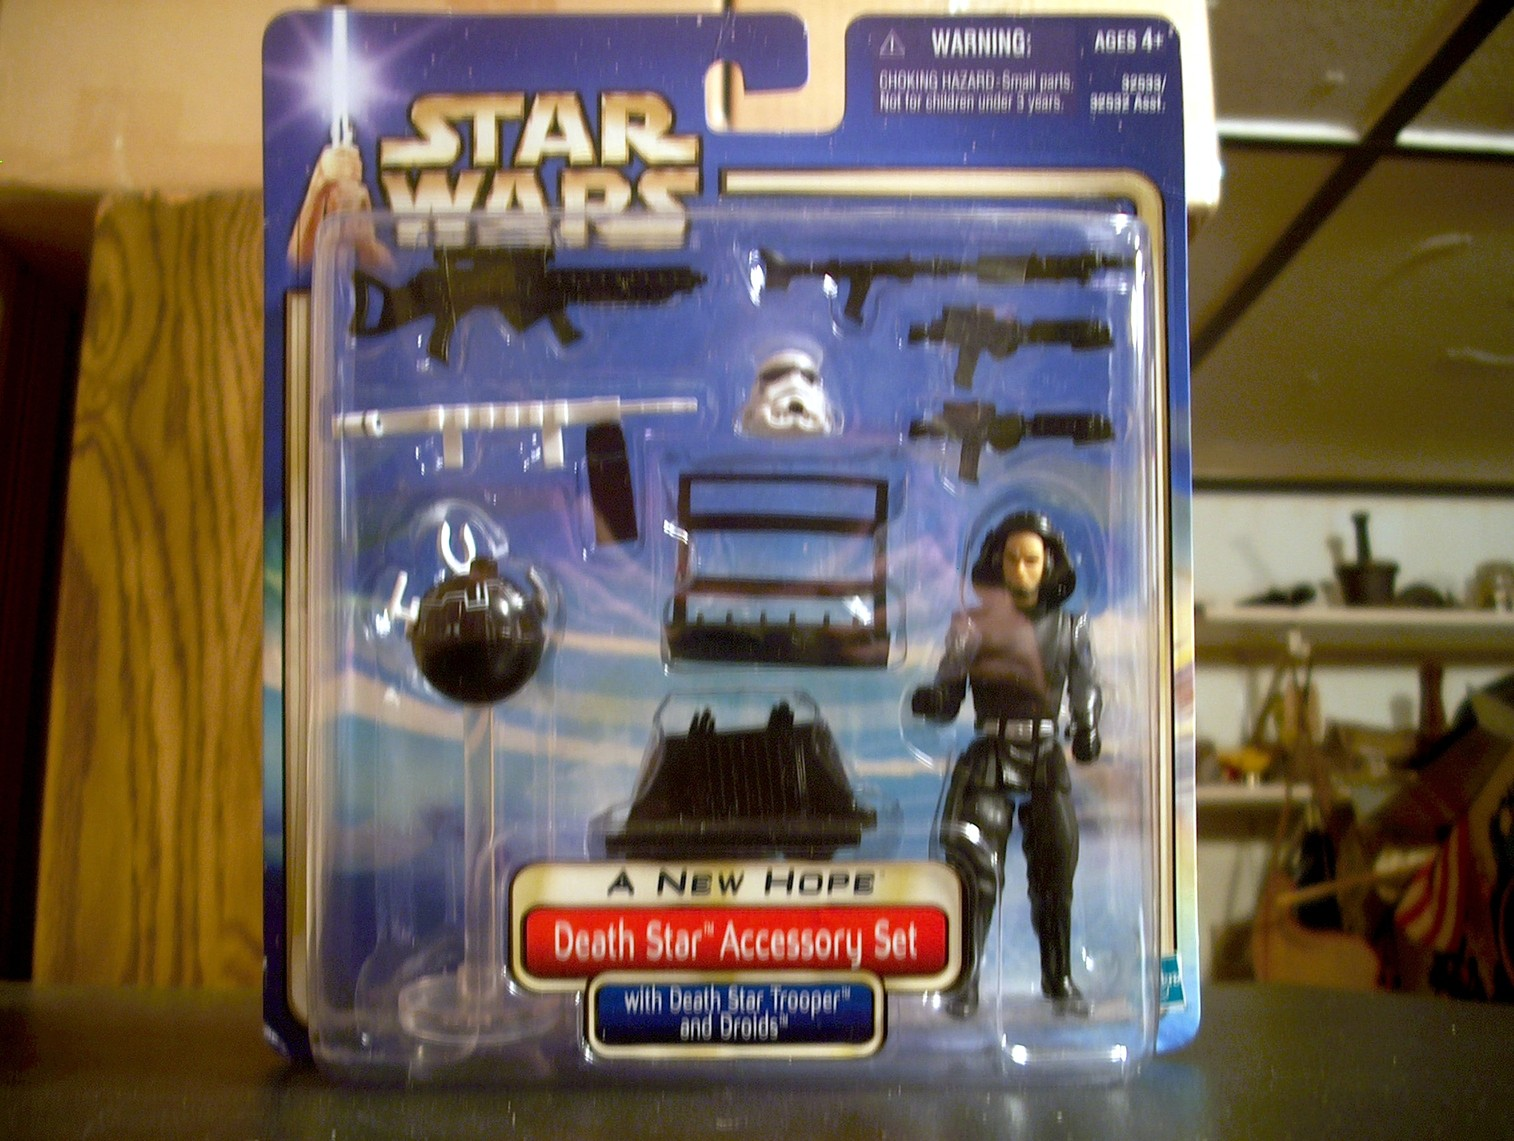 Death Star Accessory Set with Death Star Trooper and Droids